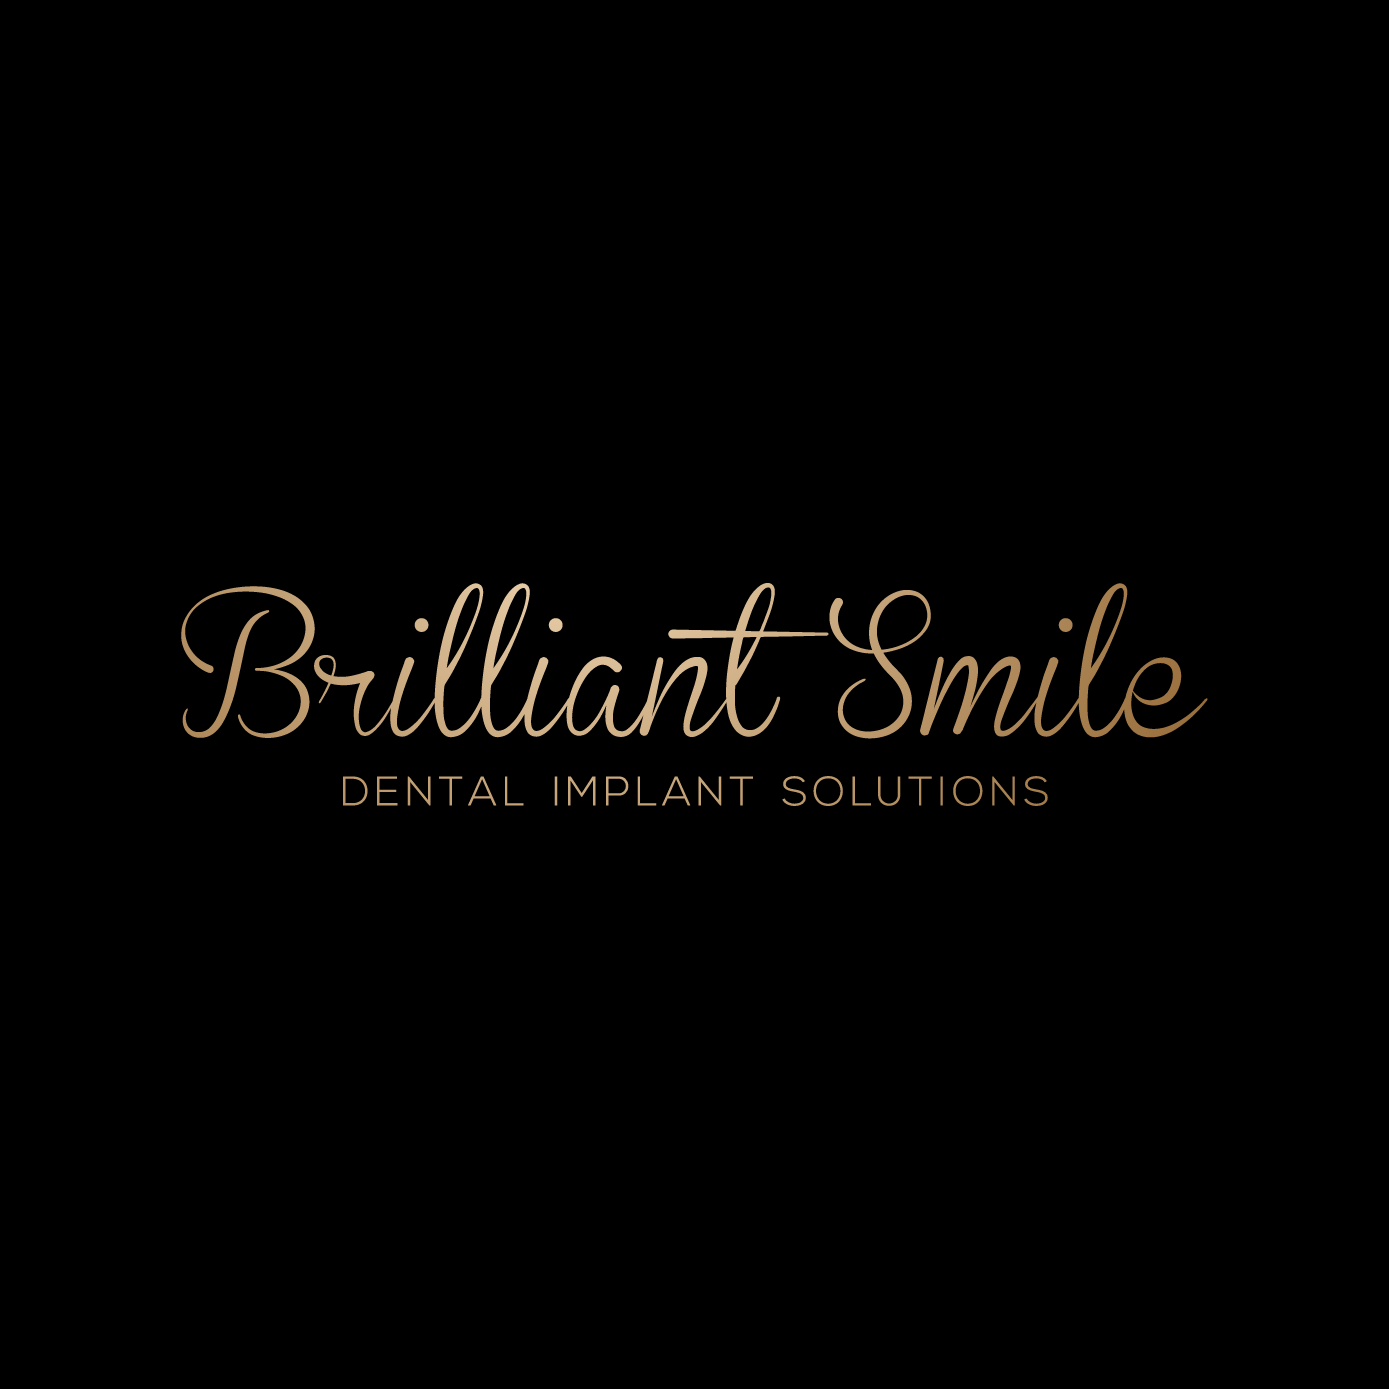 logo for a dental service and product